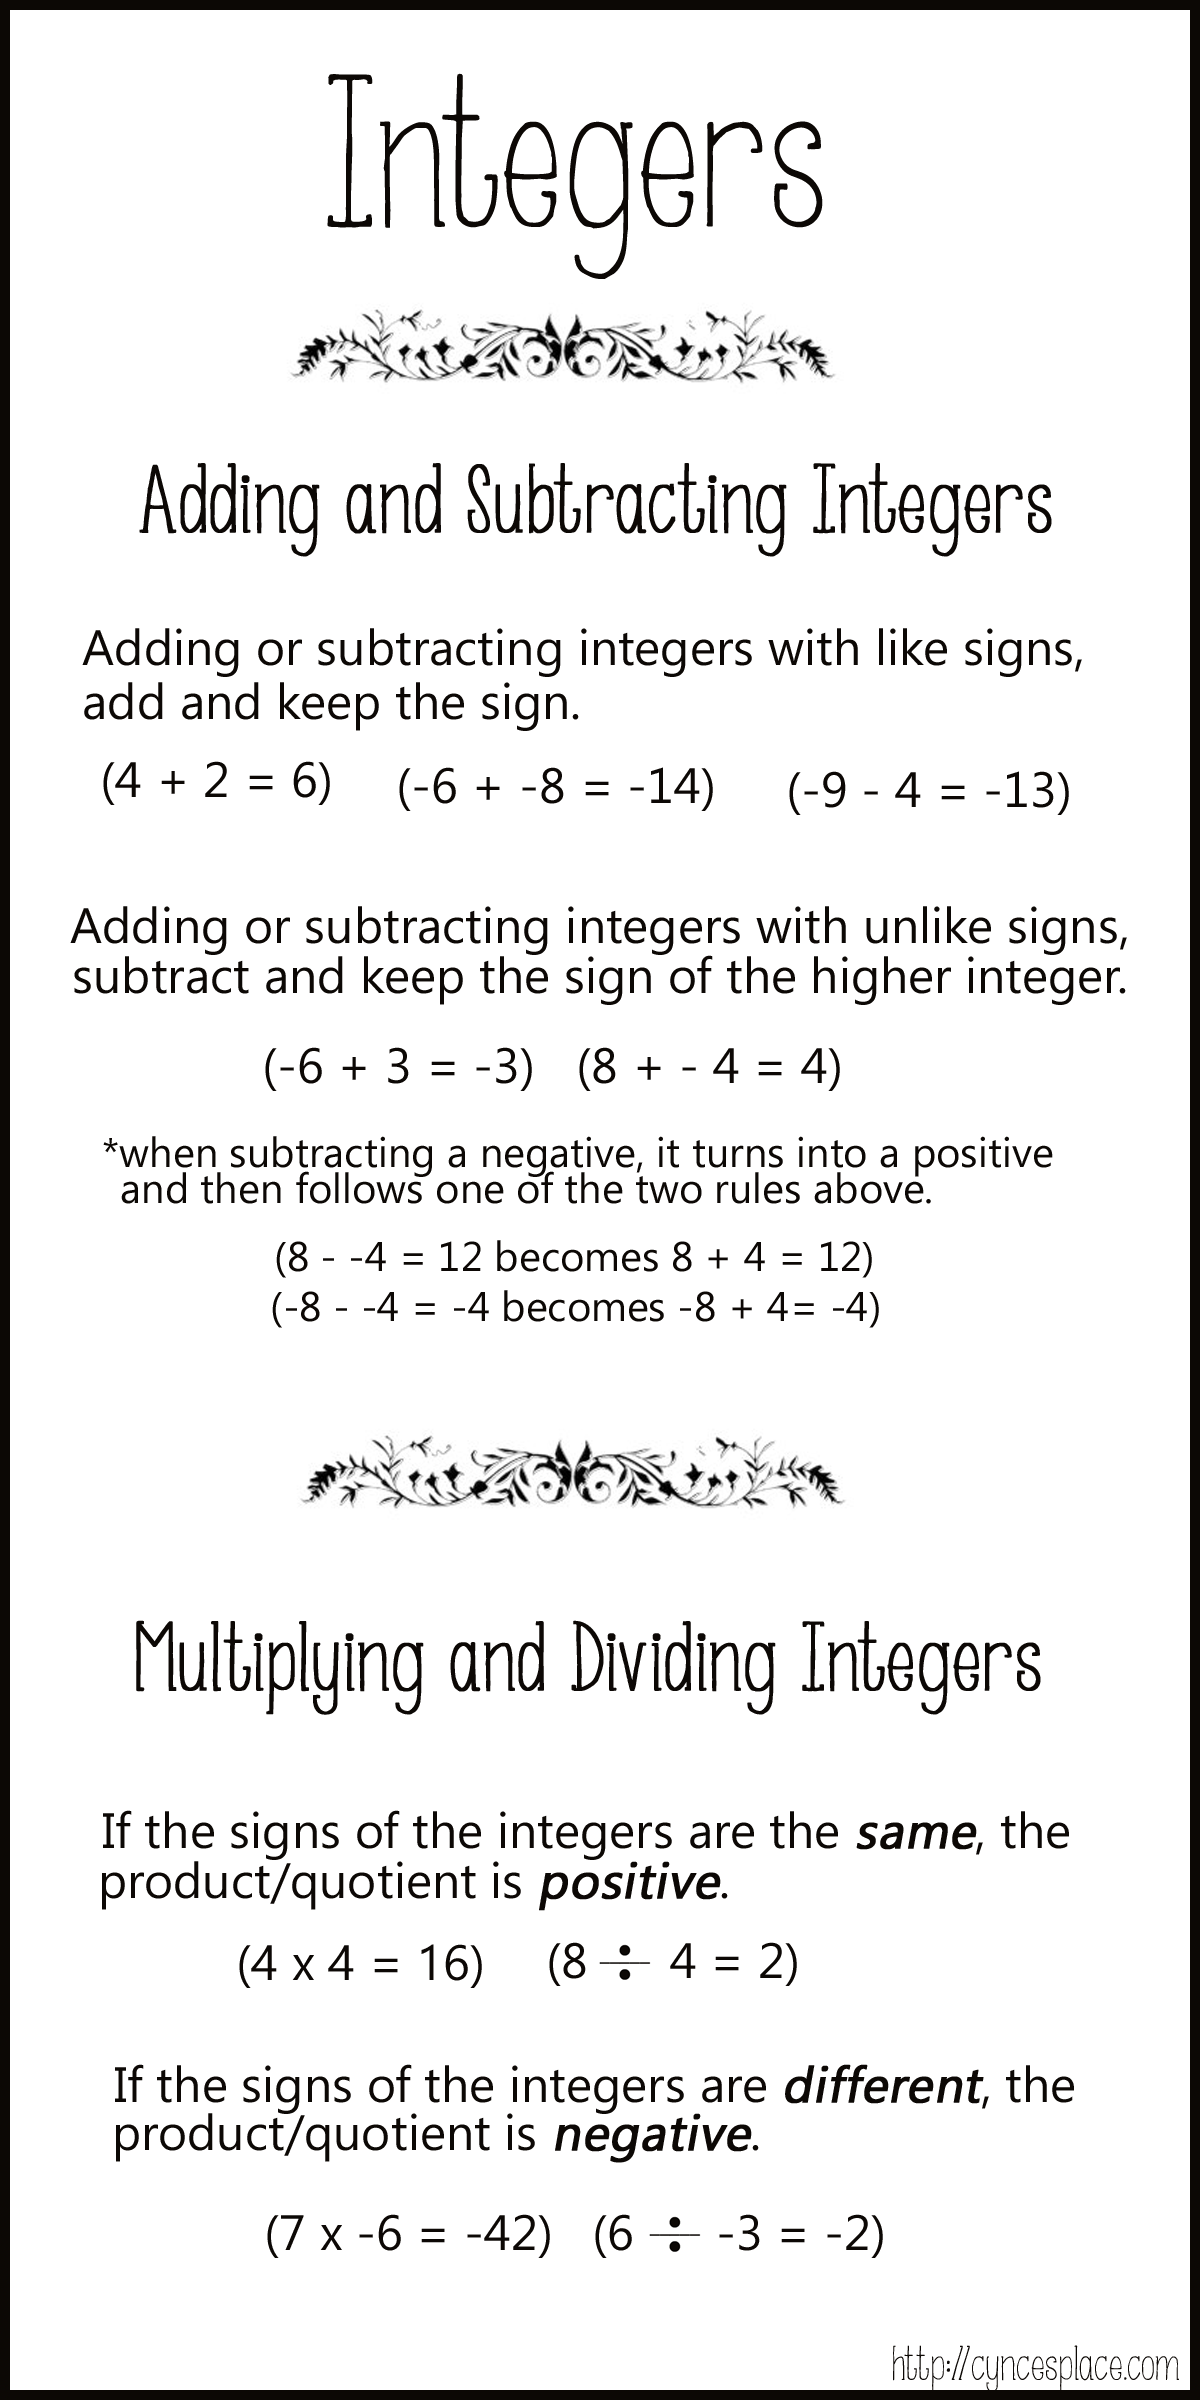 medium resolution of adding-subtracting-multiplying-and-dividing-integers-chart-3 1